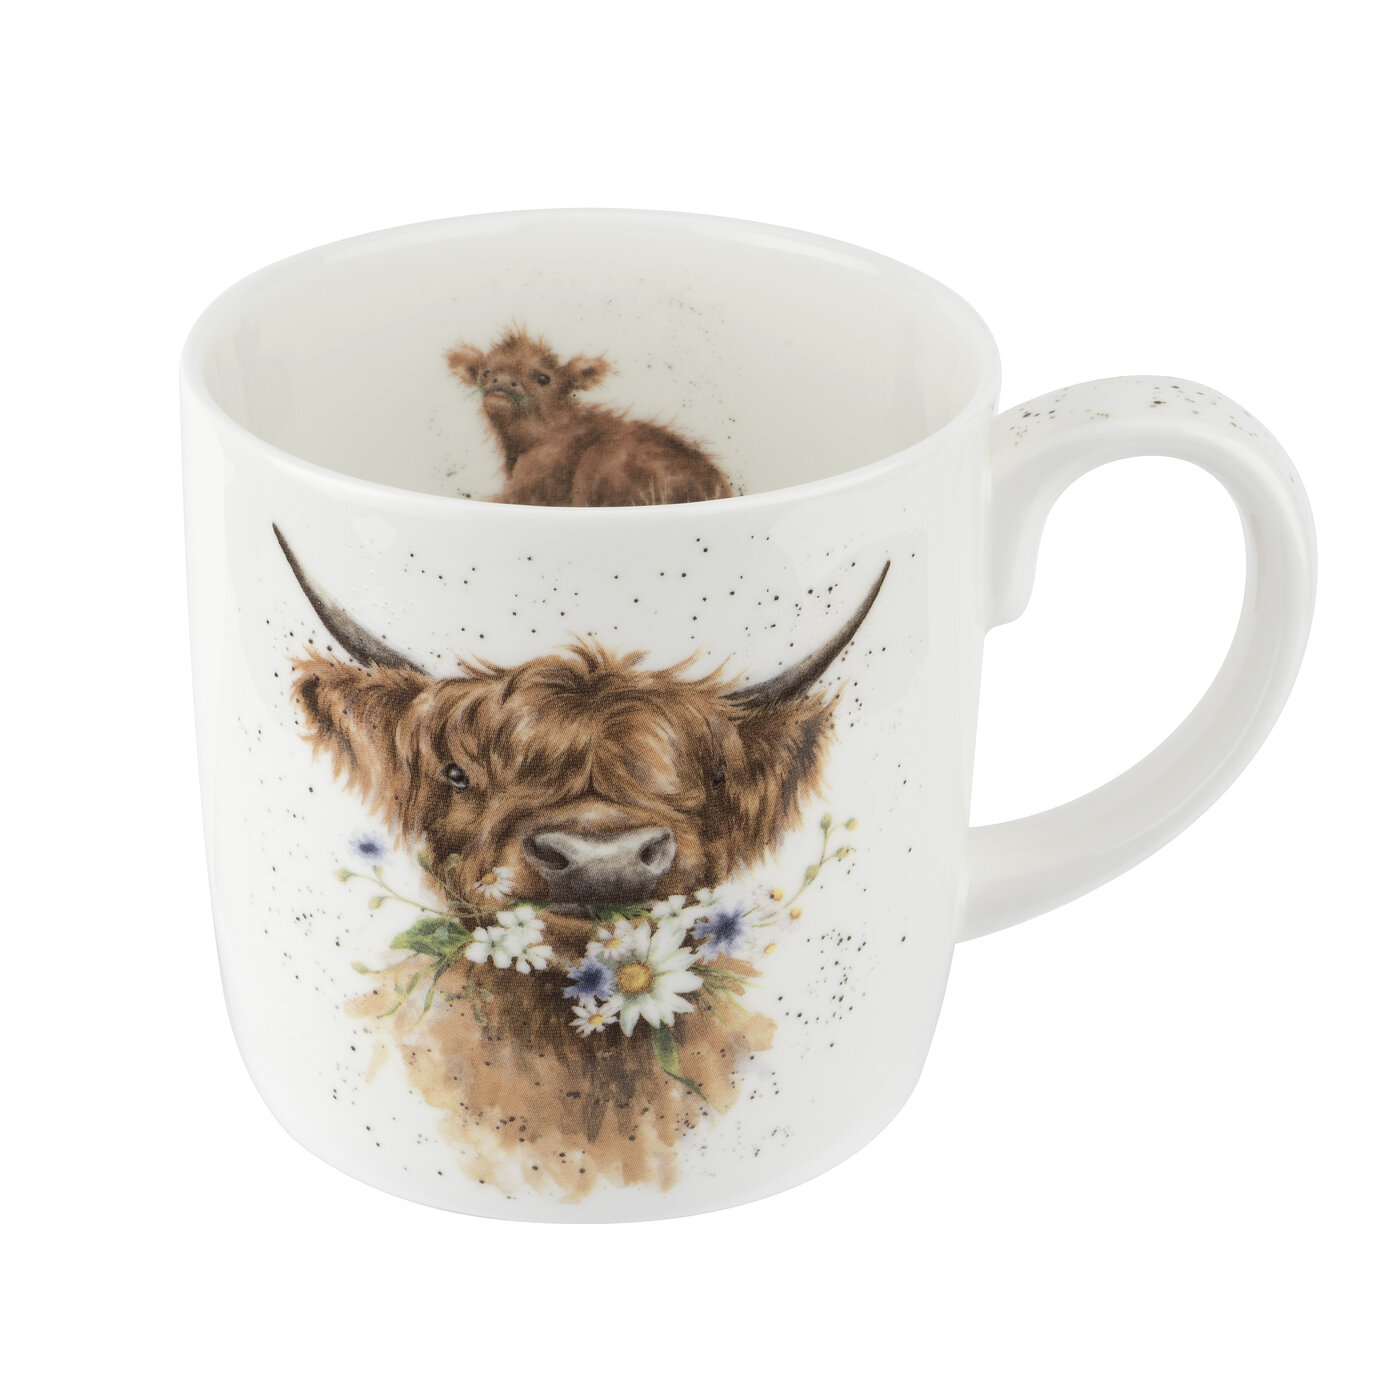 Royal Worcester Wrendale Designs Mug 14 Ounce Daisy Coo (Cow) image number 0